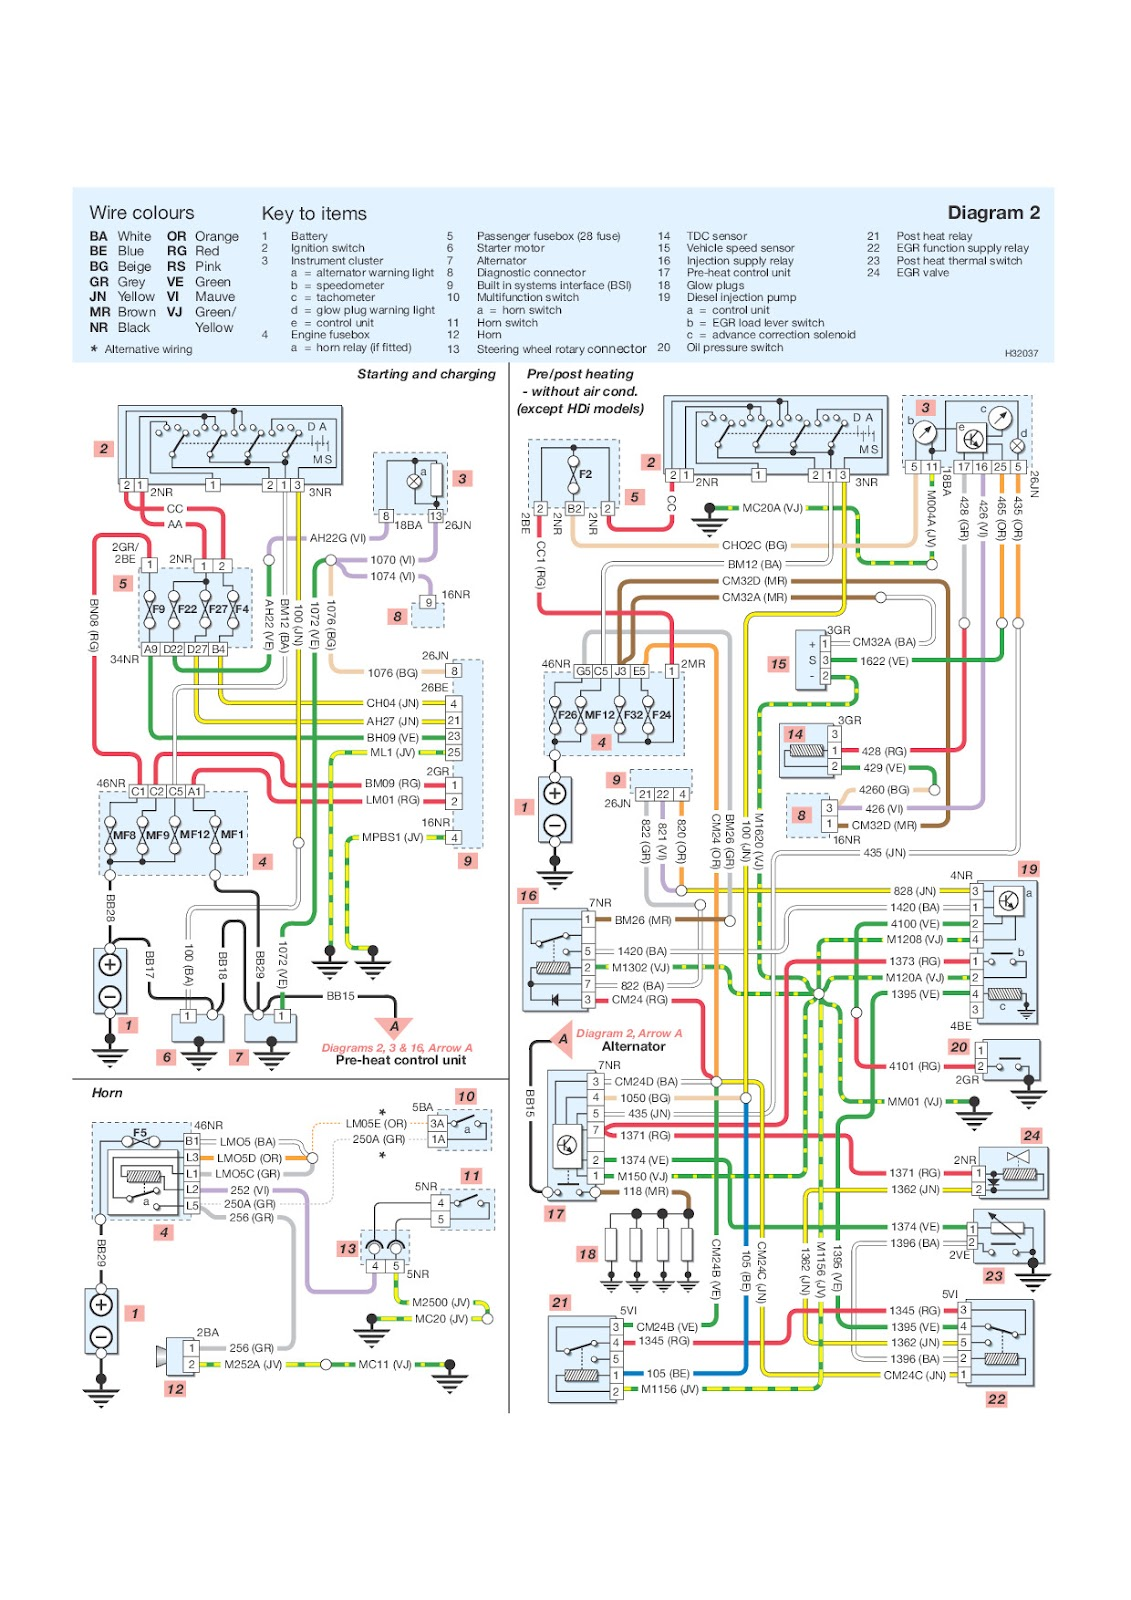 your wiring diagrams source peugeot 206 starting charging horn your wiring diagrams source peugeot 206 starting charging horn pre post heating wiring diagrams